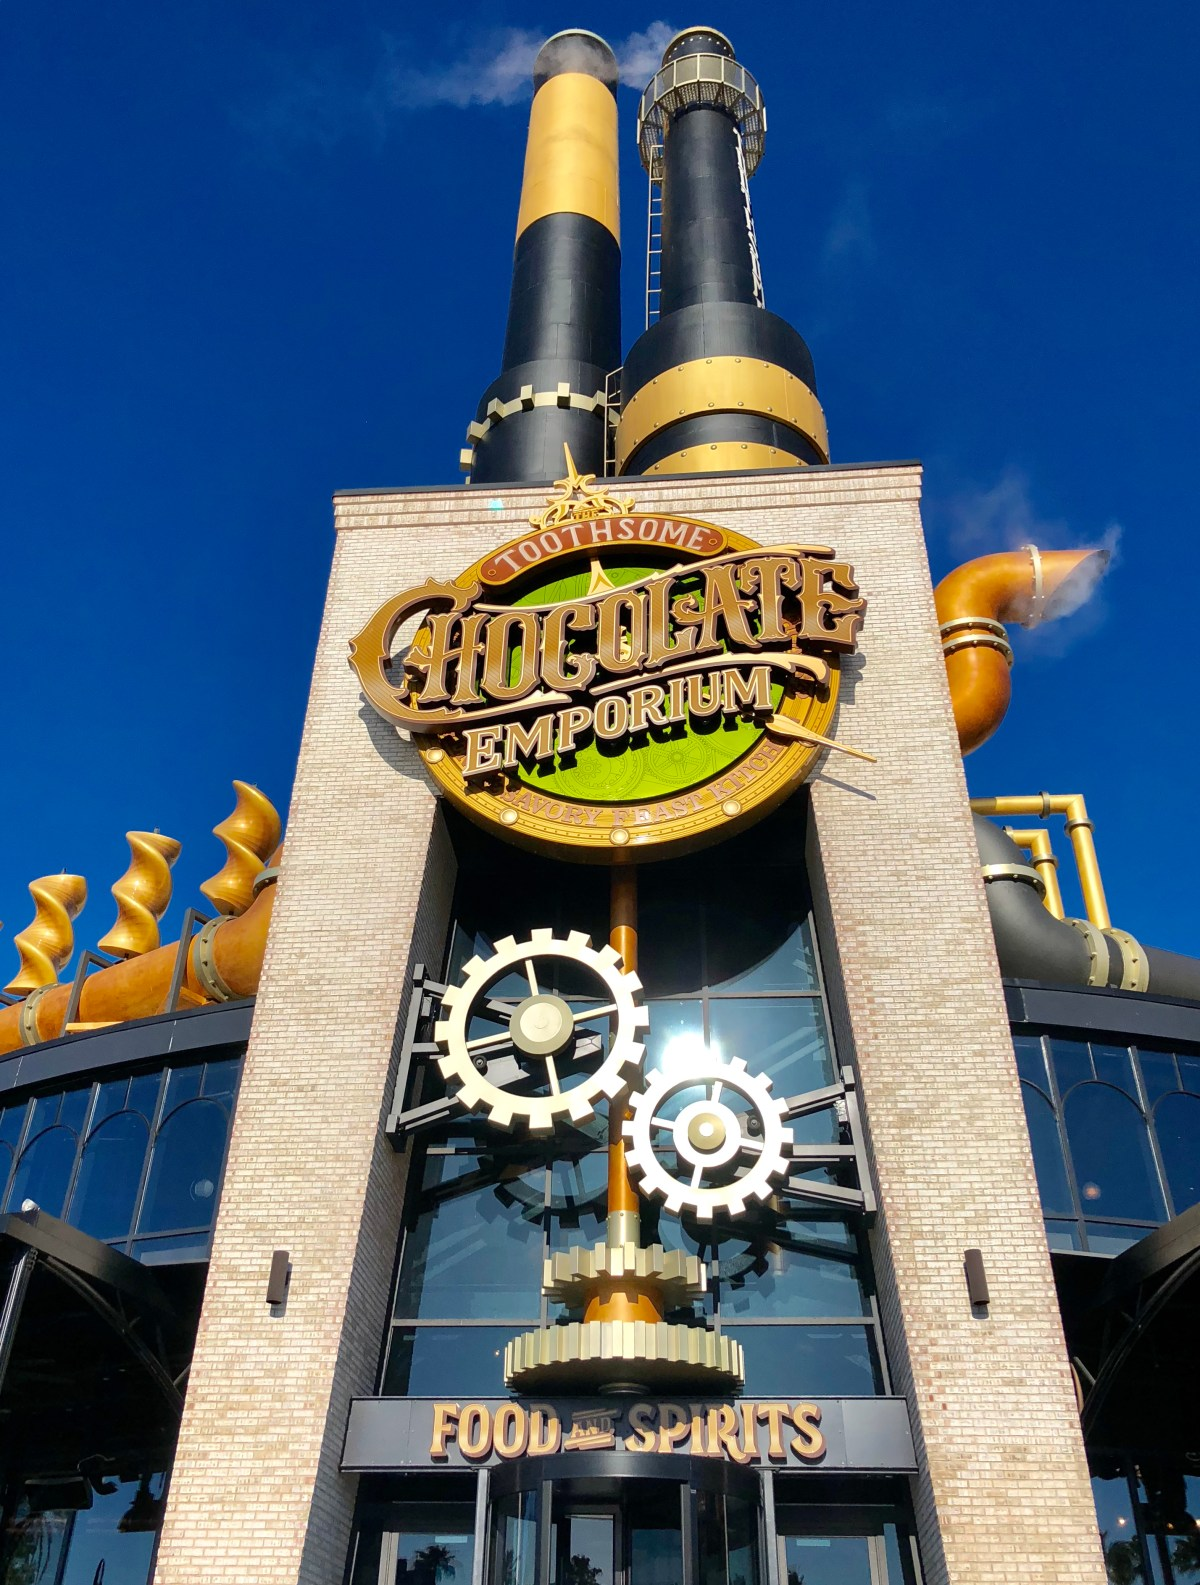 Toothsome Chocolate Emporium #toothsomechocolateemporium #toothsomes #citywalk #universalstudios #citywalkrestaurants